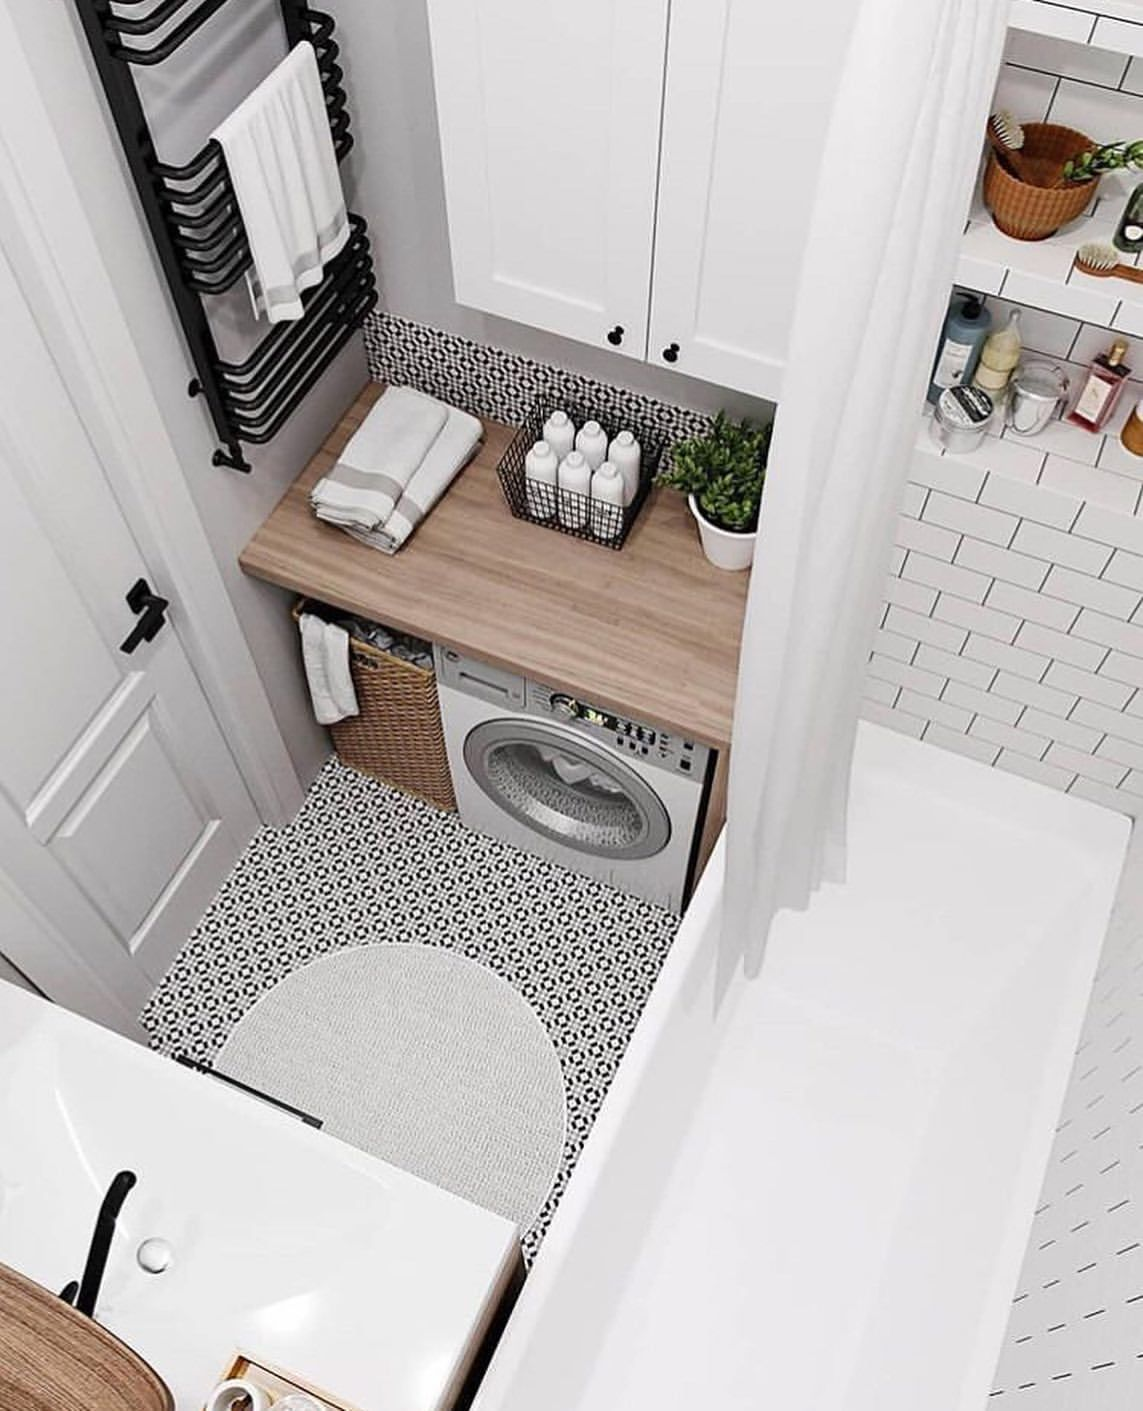 Small Rest Room Adjusted To The Millimeter Adjusted Bathroom Millimeter Small In 2020 Stylish Laundry Room Small Bathroom Ideas On A Budget Small Bathroom